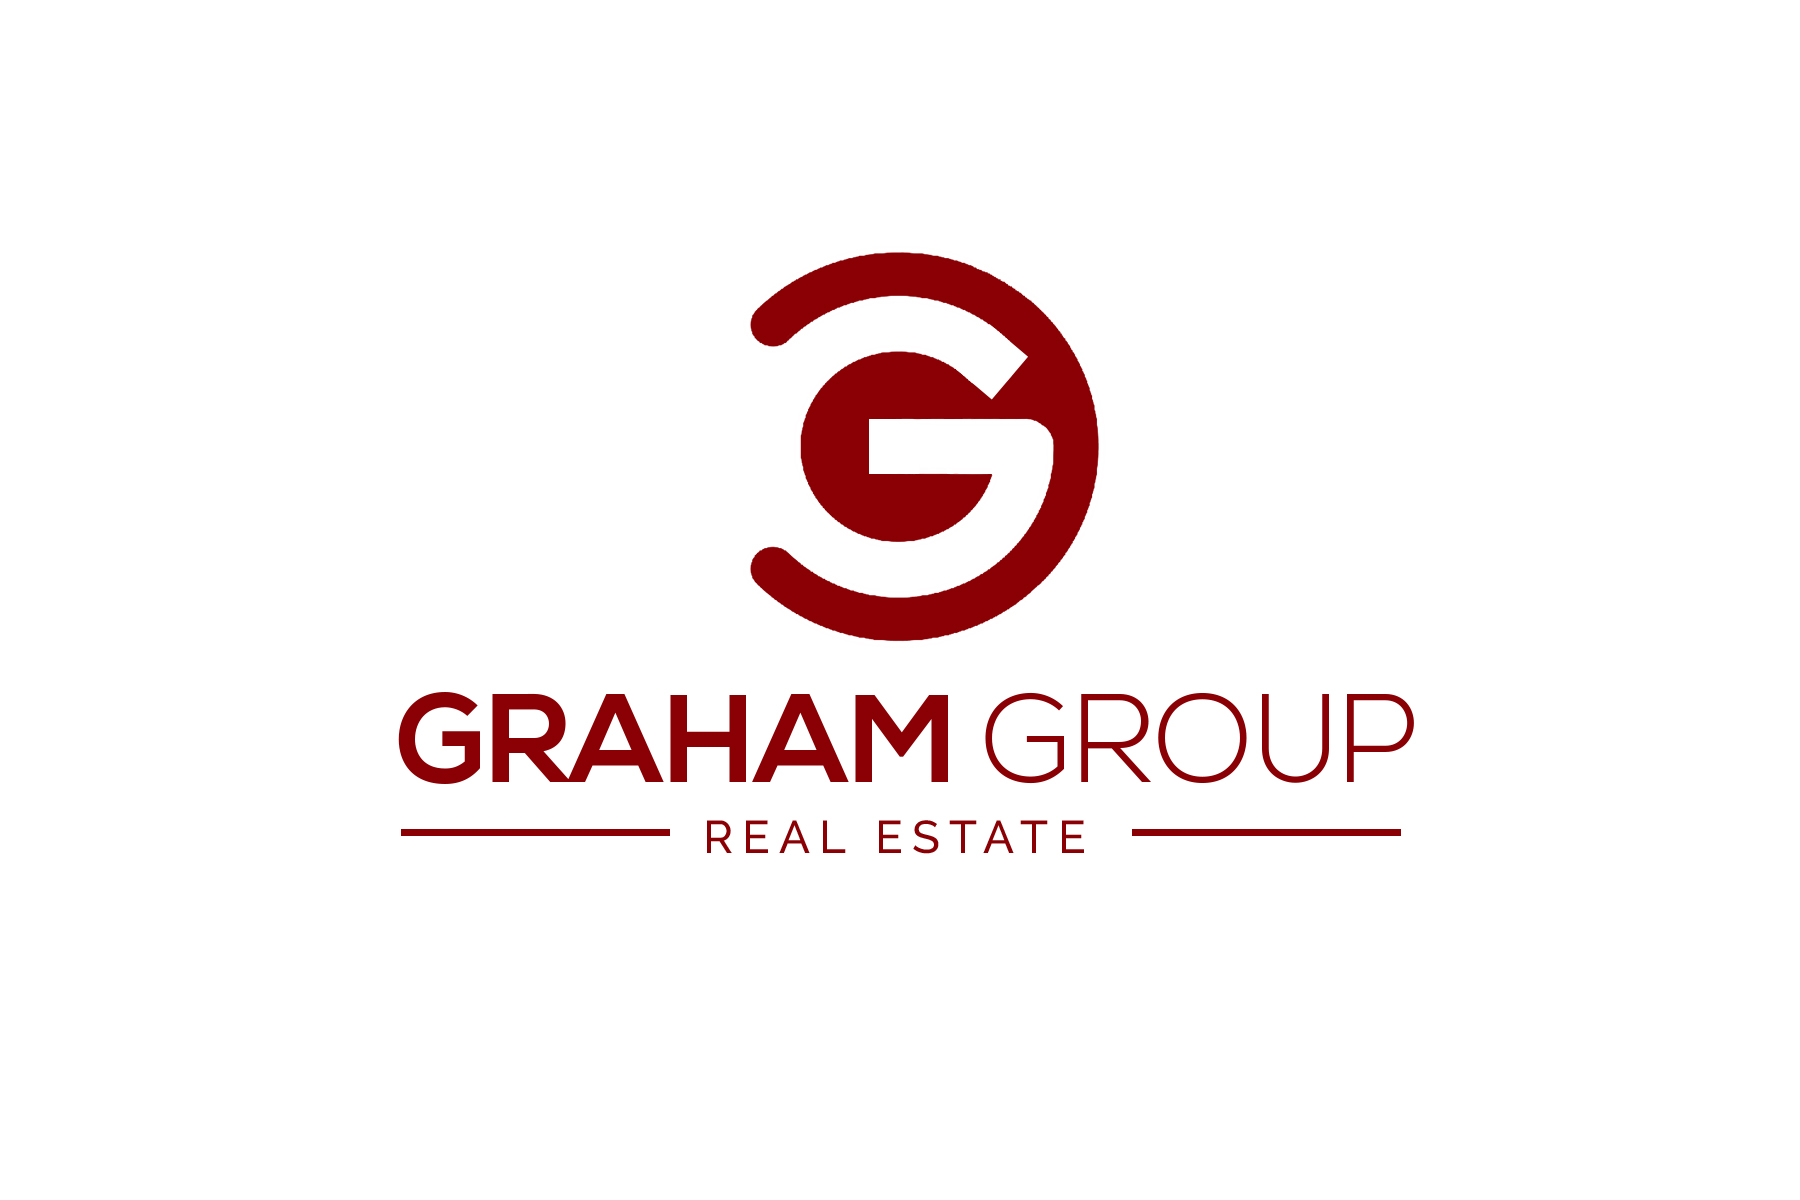 The Graham Group RE logo